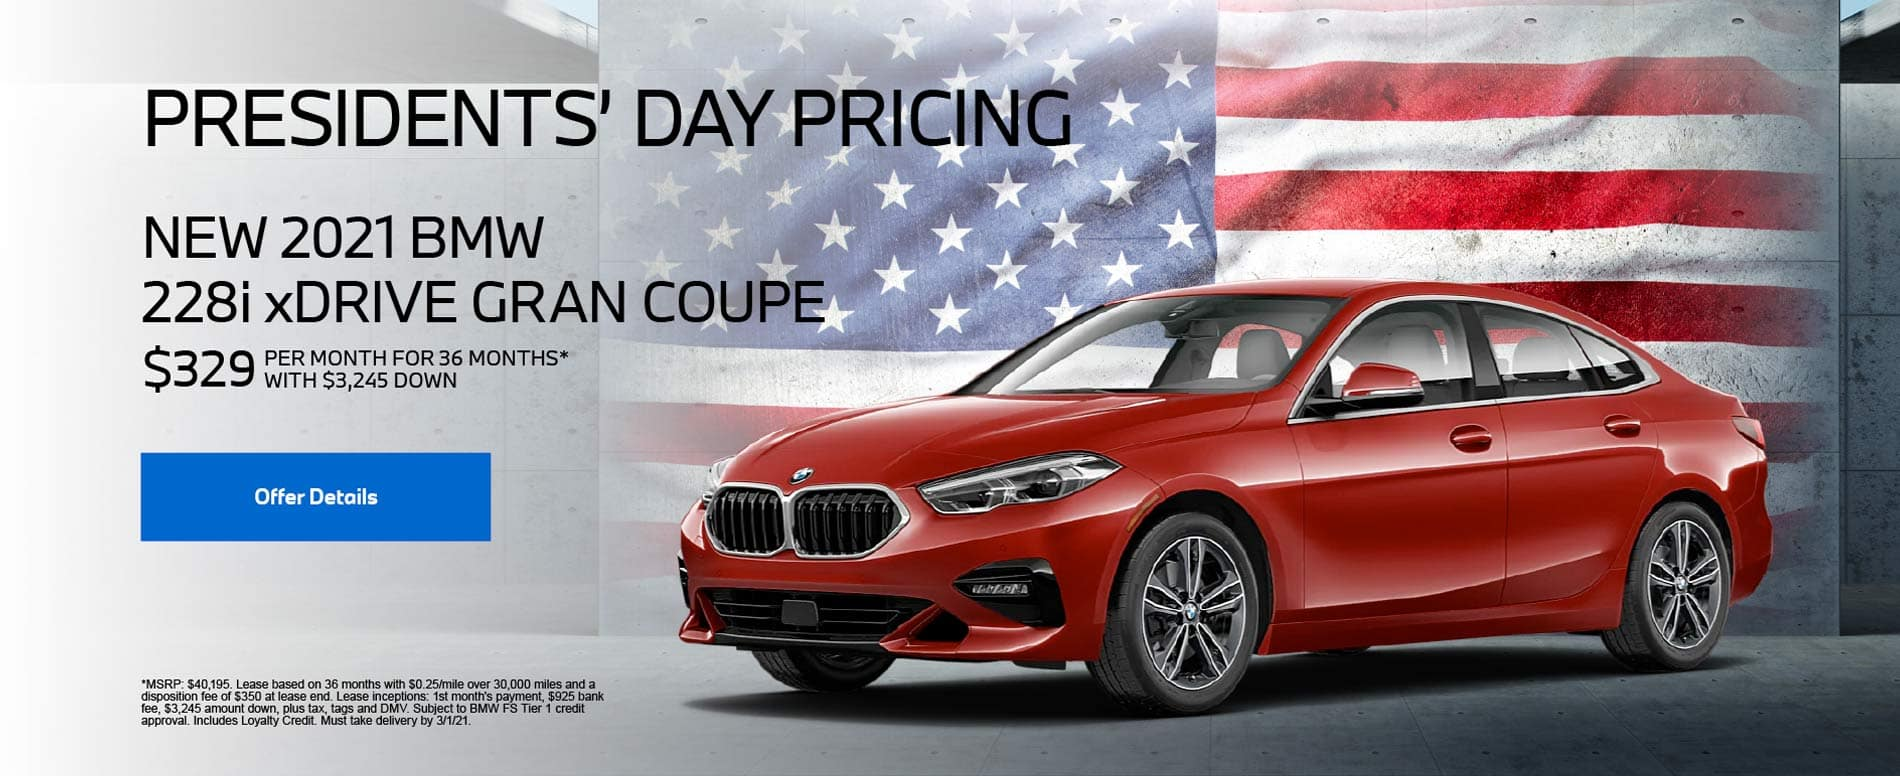 New 2021 BMW 228i xDrive Gran Coupe $329 PER MONTH FOR 36 MONTHS* WITH $3,245 DOWN